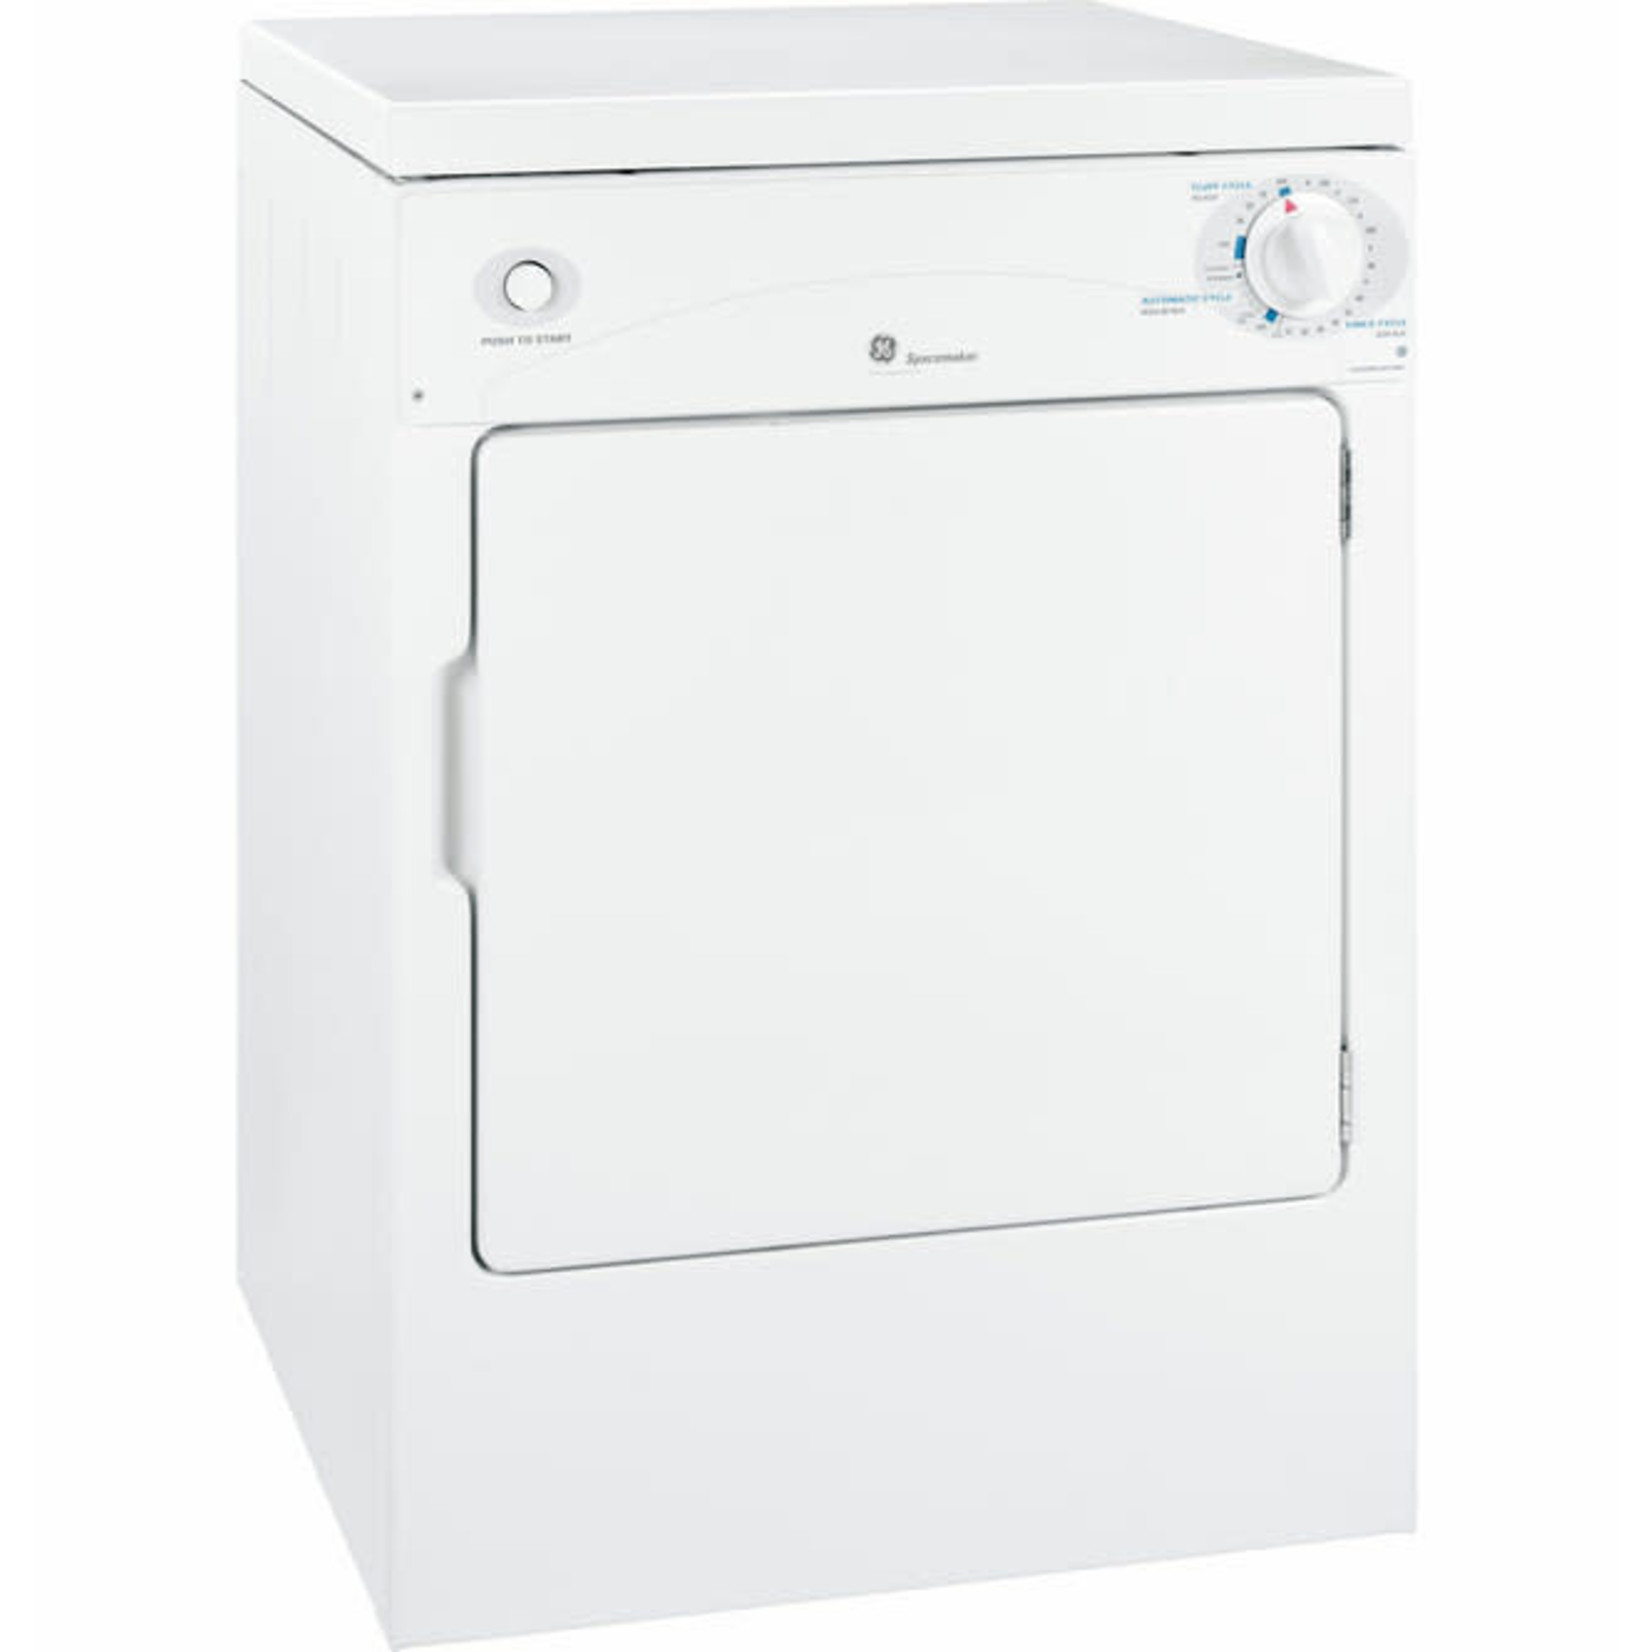 GE GE Spacemaker® 120V 3.6 cu. ft. Capacity Portable Electric Dryer